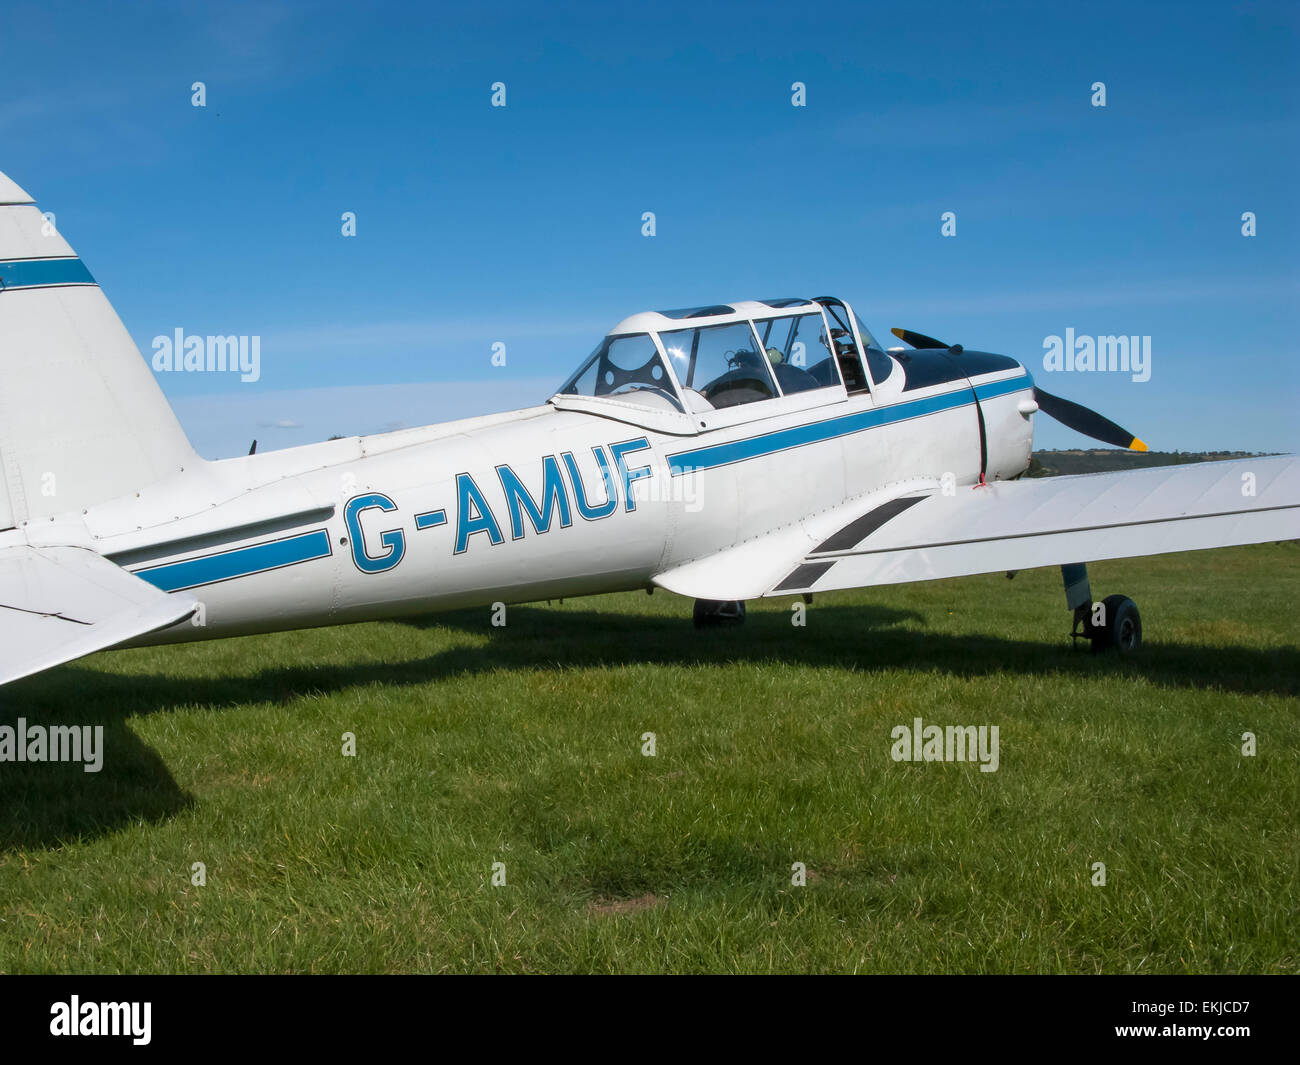 An superb example of a 1950s De Havilland Chipmunk two seater trainer - Stock Image